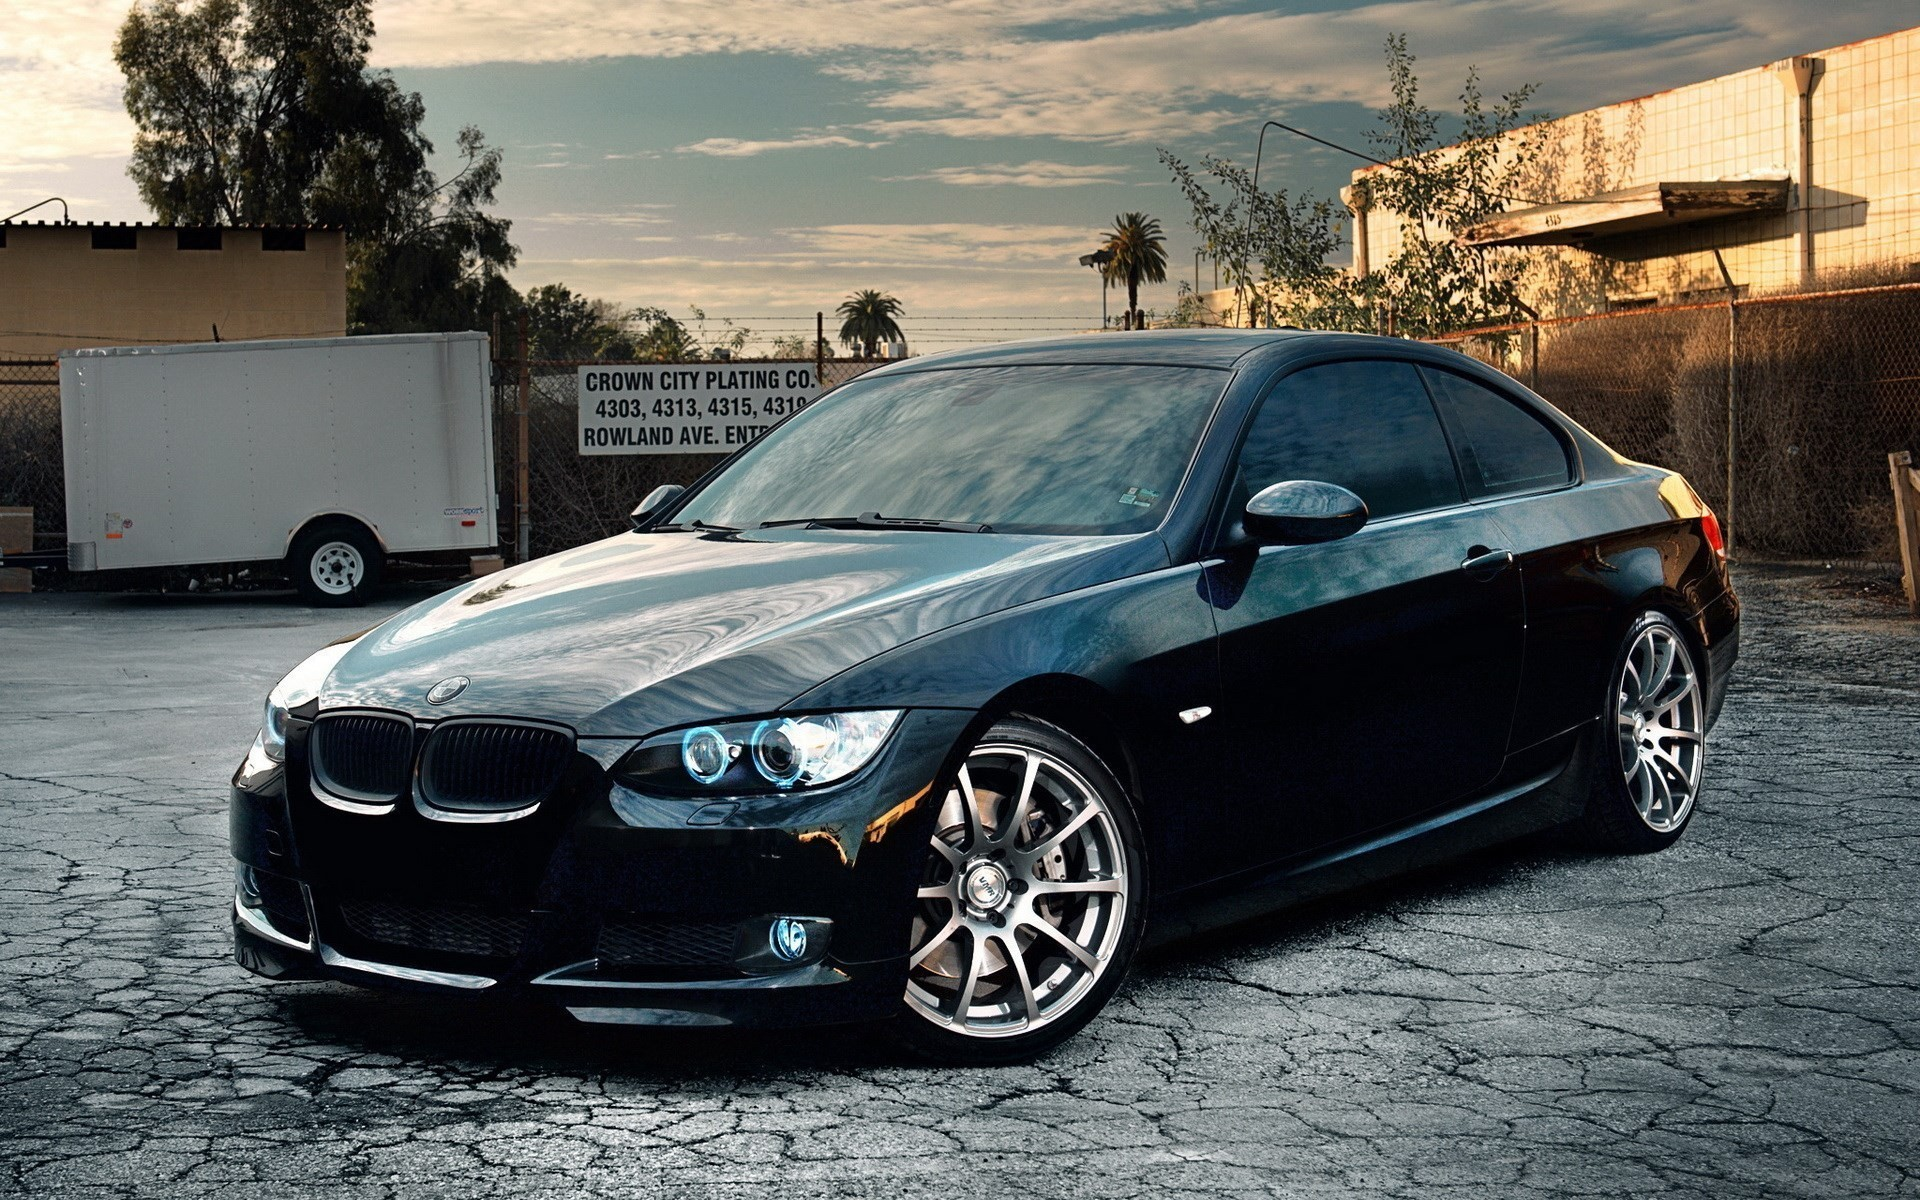 1920x1200 58693 Hd Widescreen Wallpapers Bmw E46 M3 Wallpaper